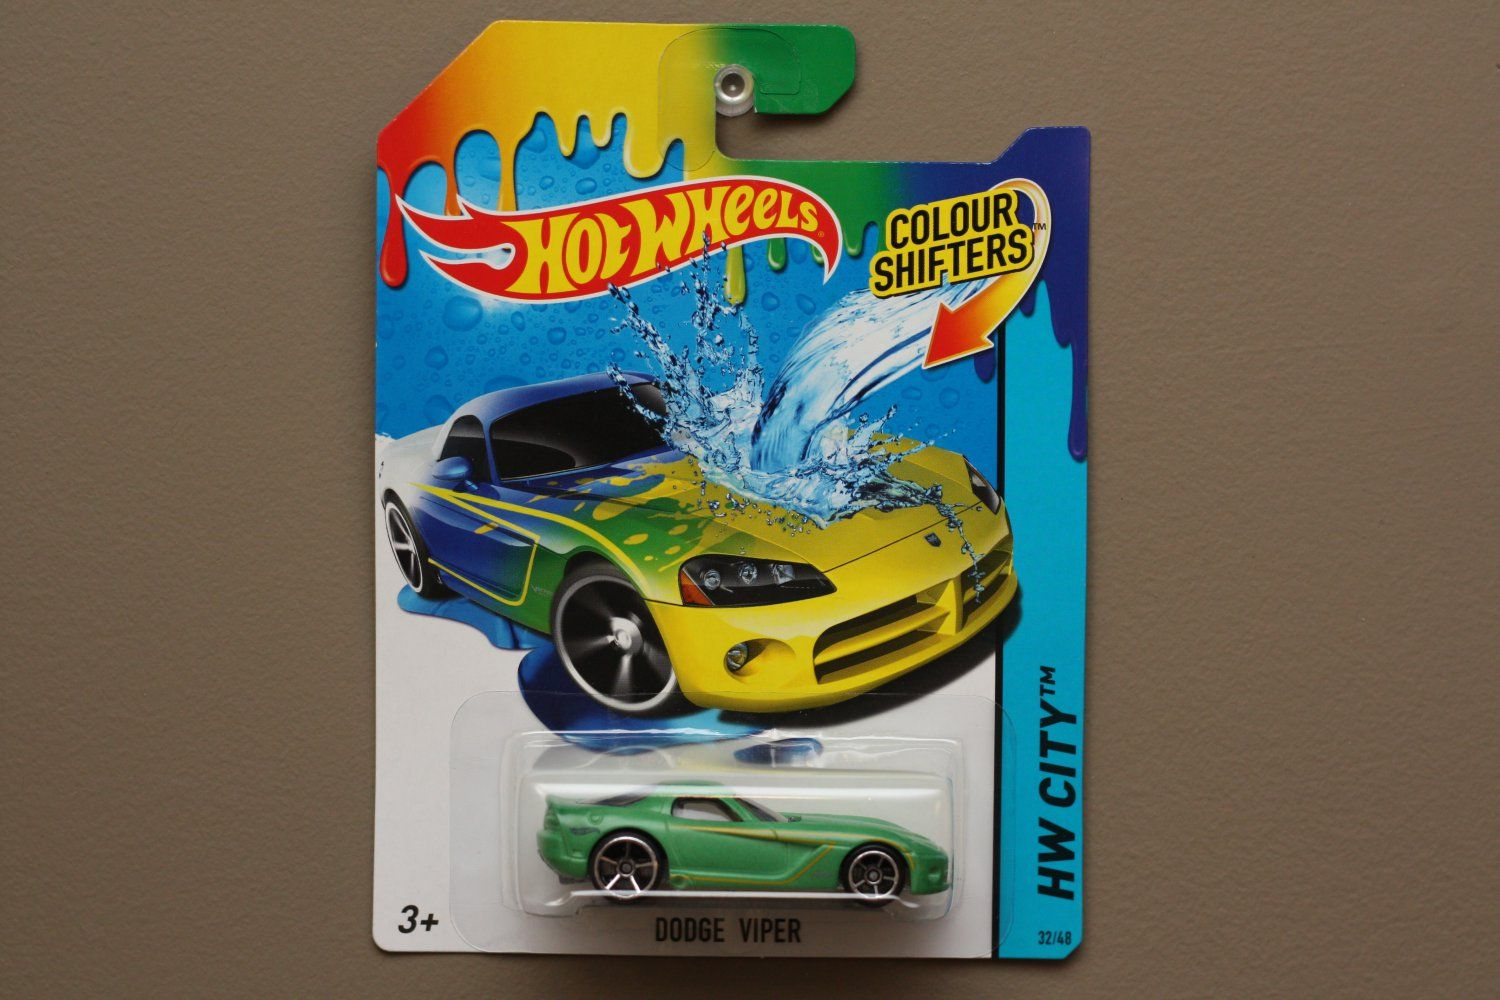 Hot Wheels 2014 Color Shifters Dodge Viper Teal To Yellow